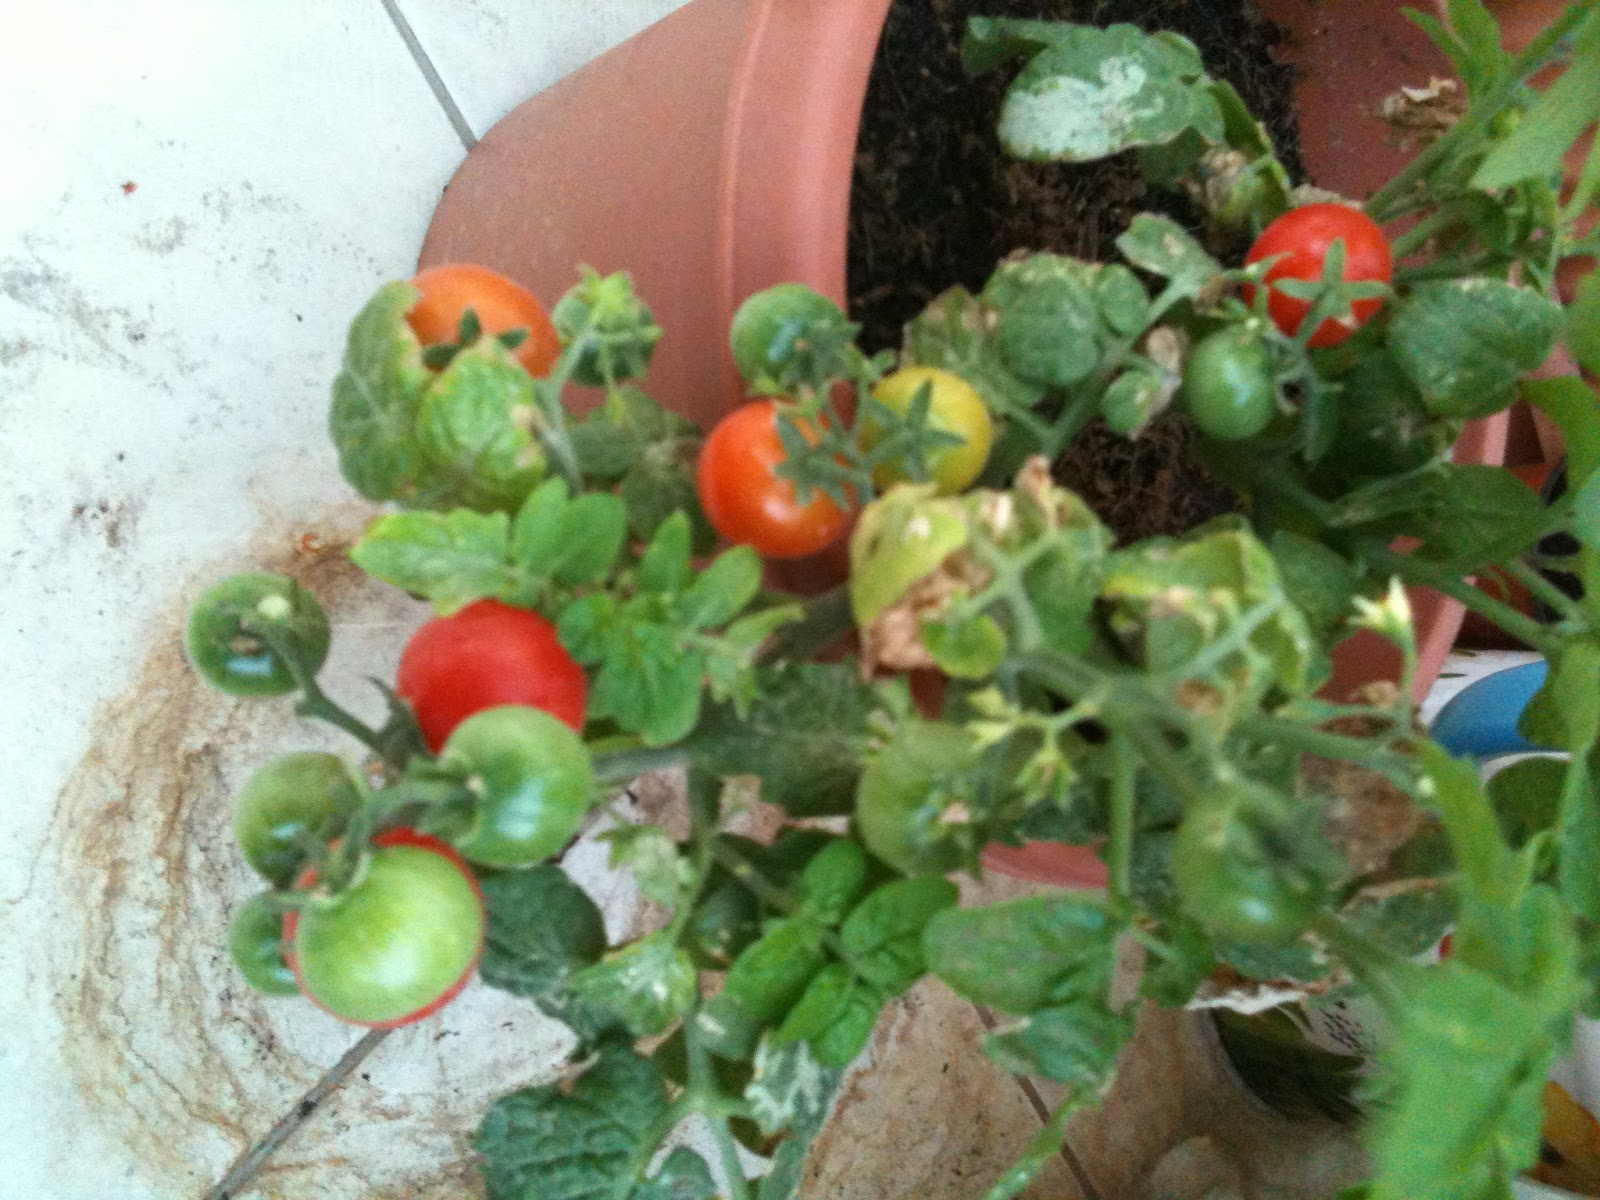 Dubai veg growers how to grow tomatoes in a container on your balcony - Best tomato plants for container gardening ...